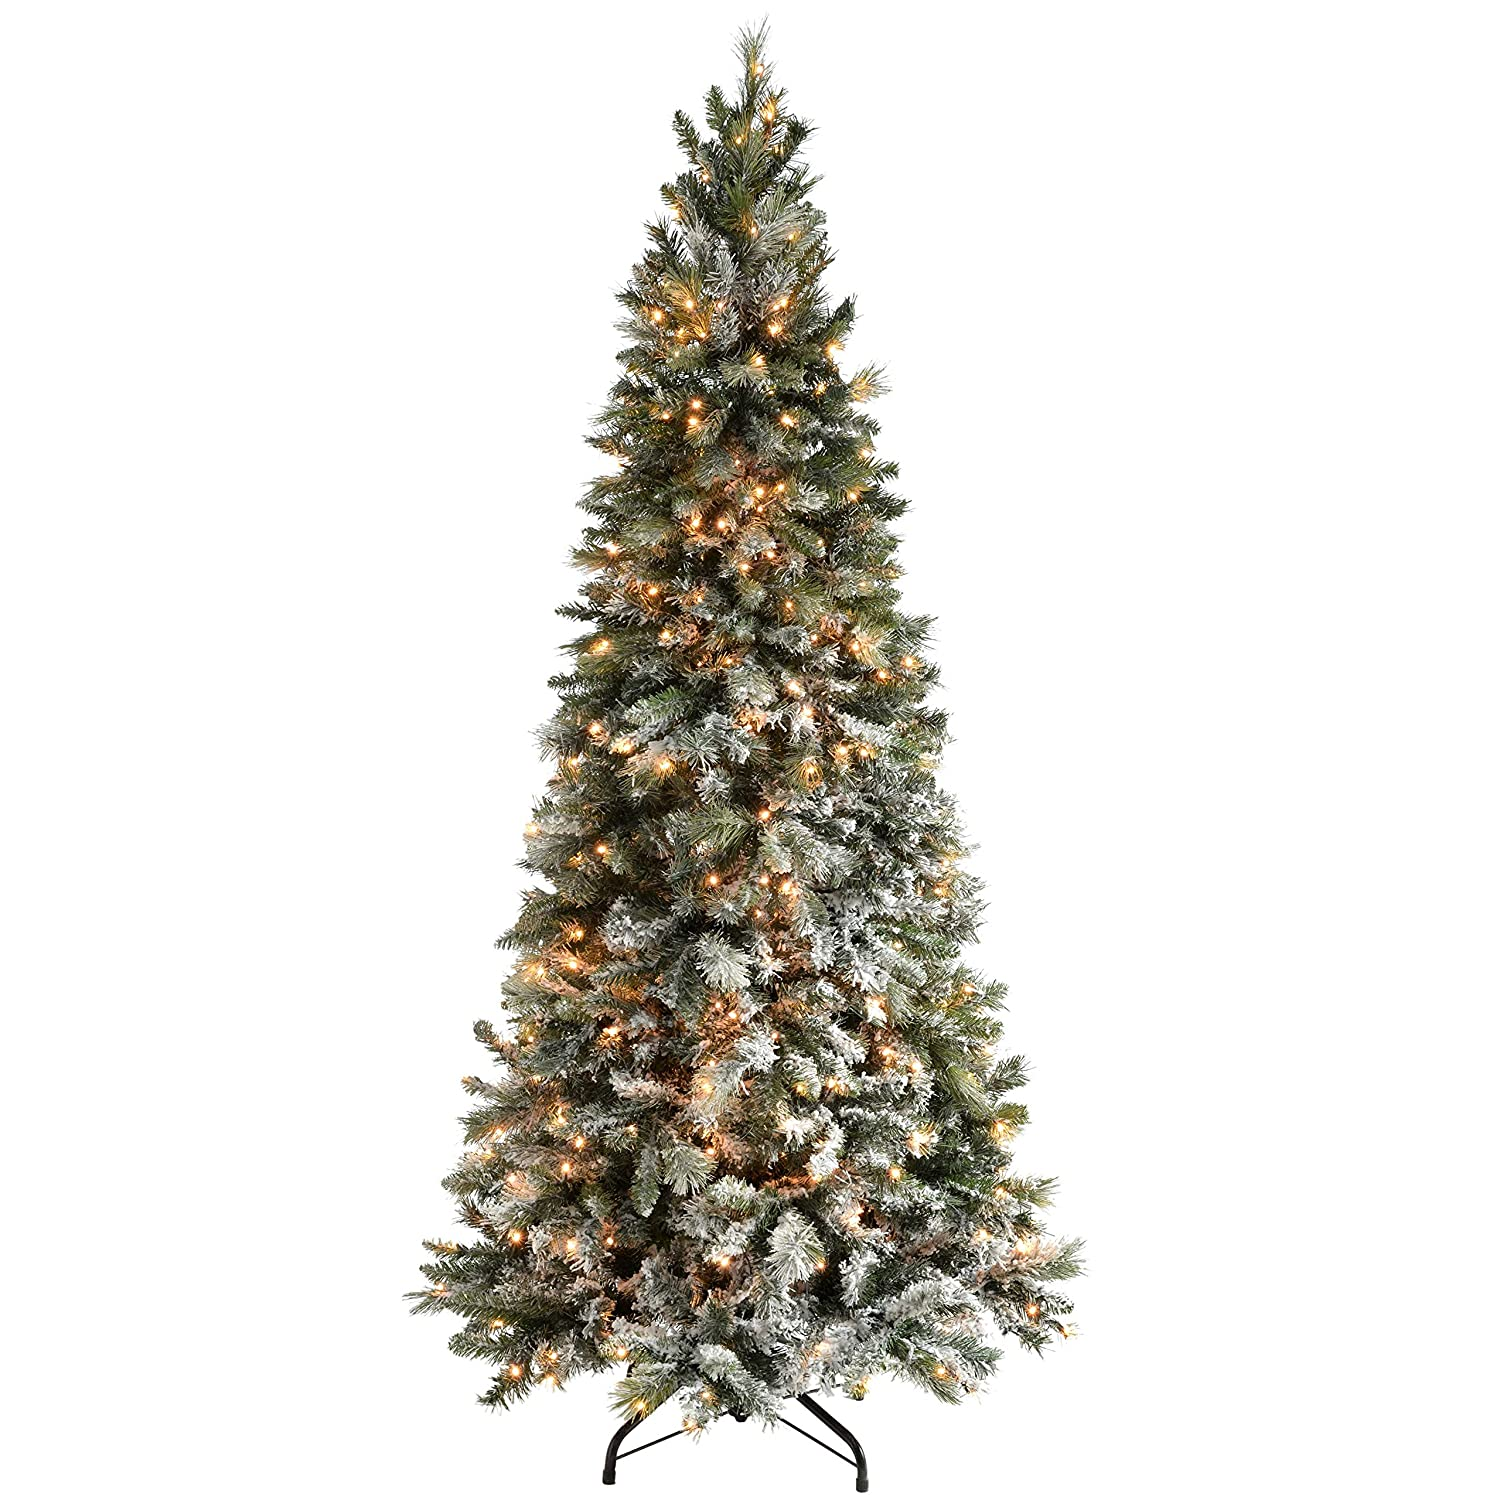 7ft 2 1m Slim Snow Flocked Spruce Pre Lit Christmas Tree With 400 Warm White Led Lights With Easy Build Hinged Branches